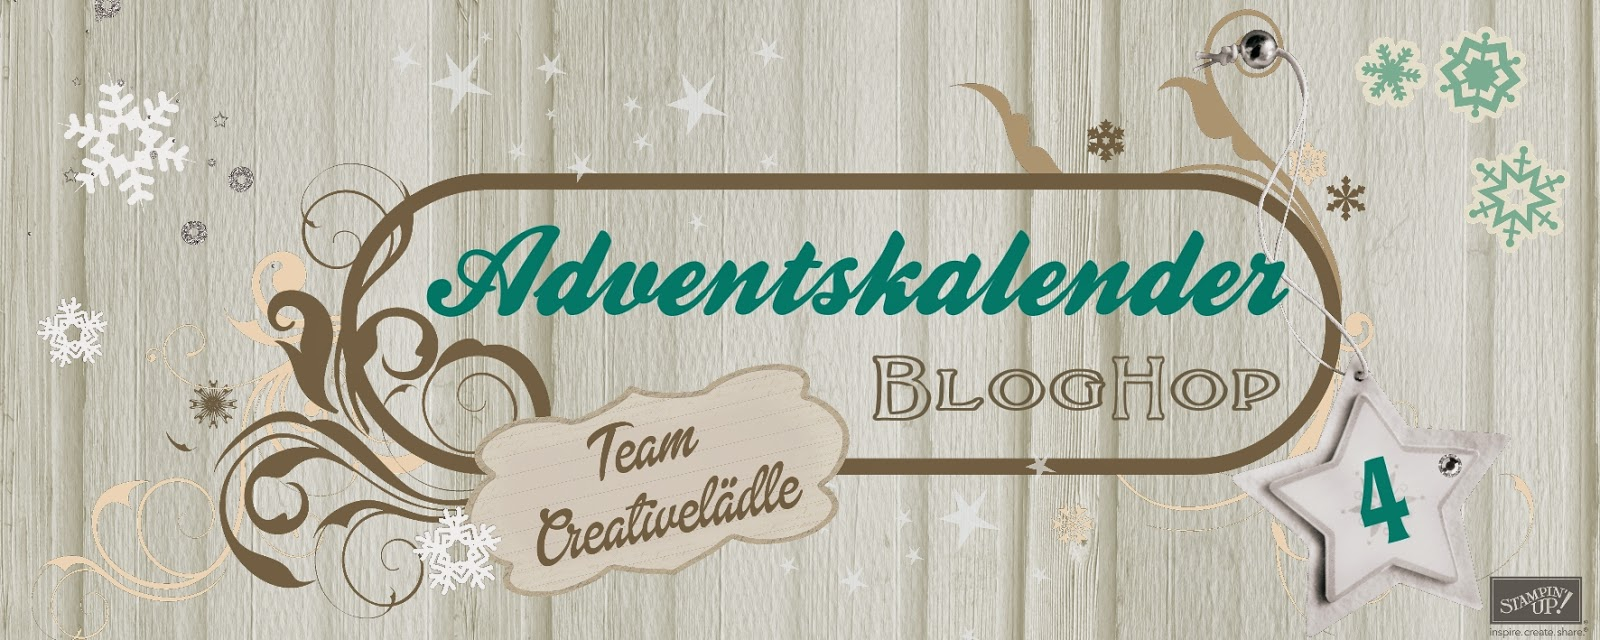 http://melburns-kreative-welt.blogspot.com/2014/12/adventskalender-blog-hop-tag-4_4.html